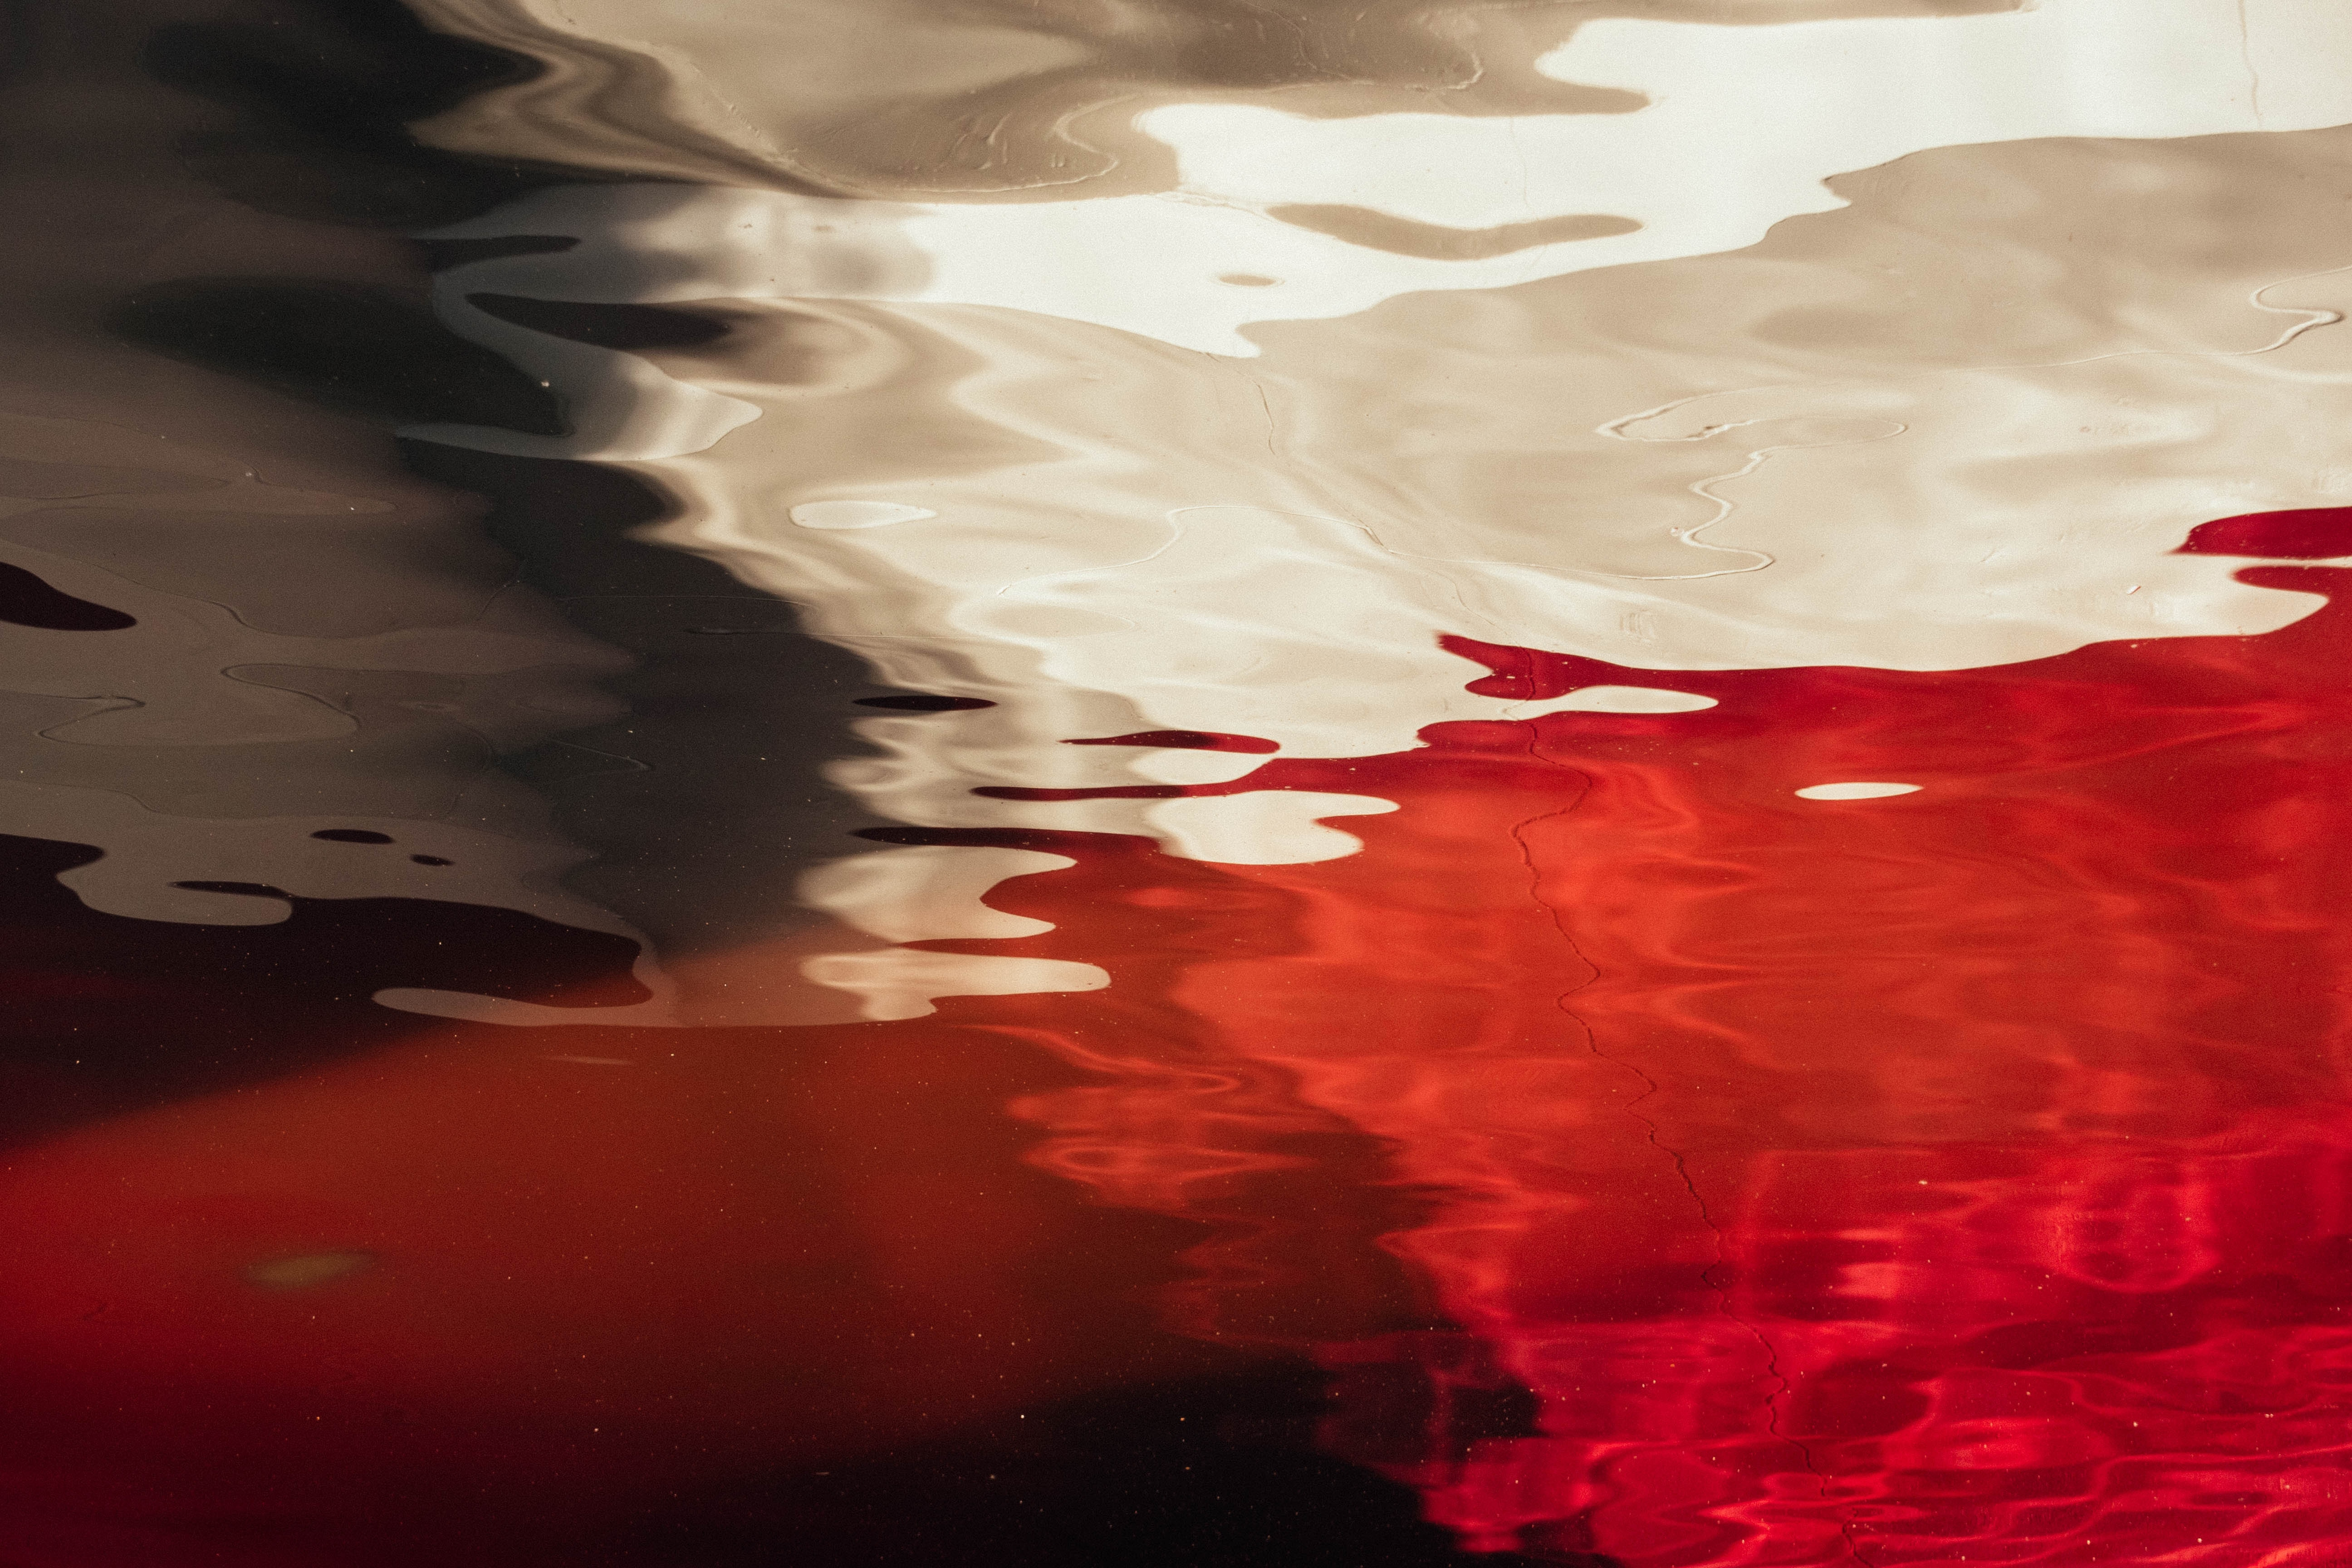 77798 download wallpaper Abstract, Water, Surface, Ripples, Ripple, Reflection, Wavy screensavers and pictures for free